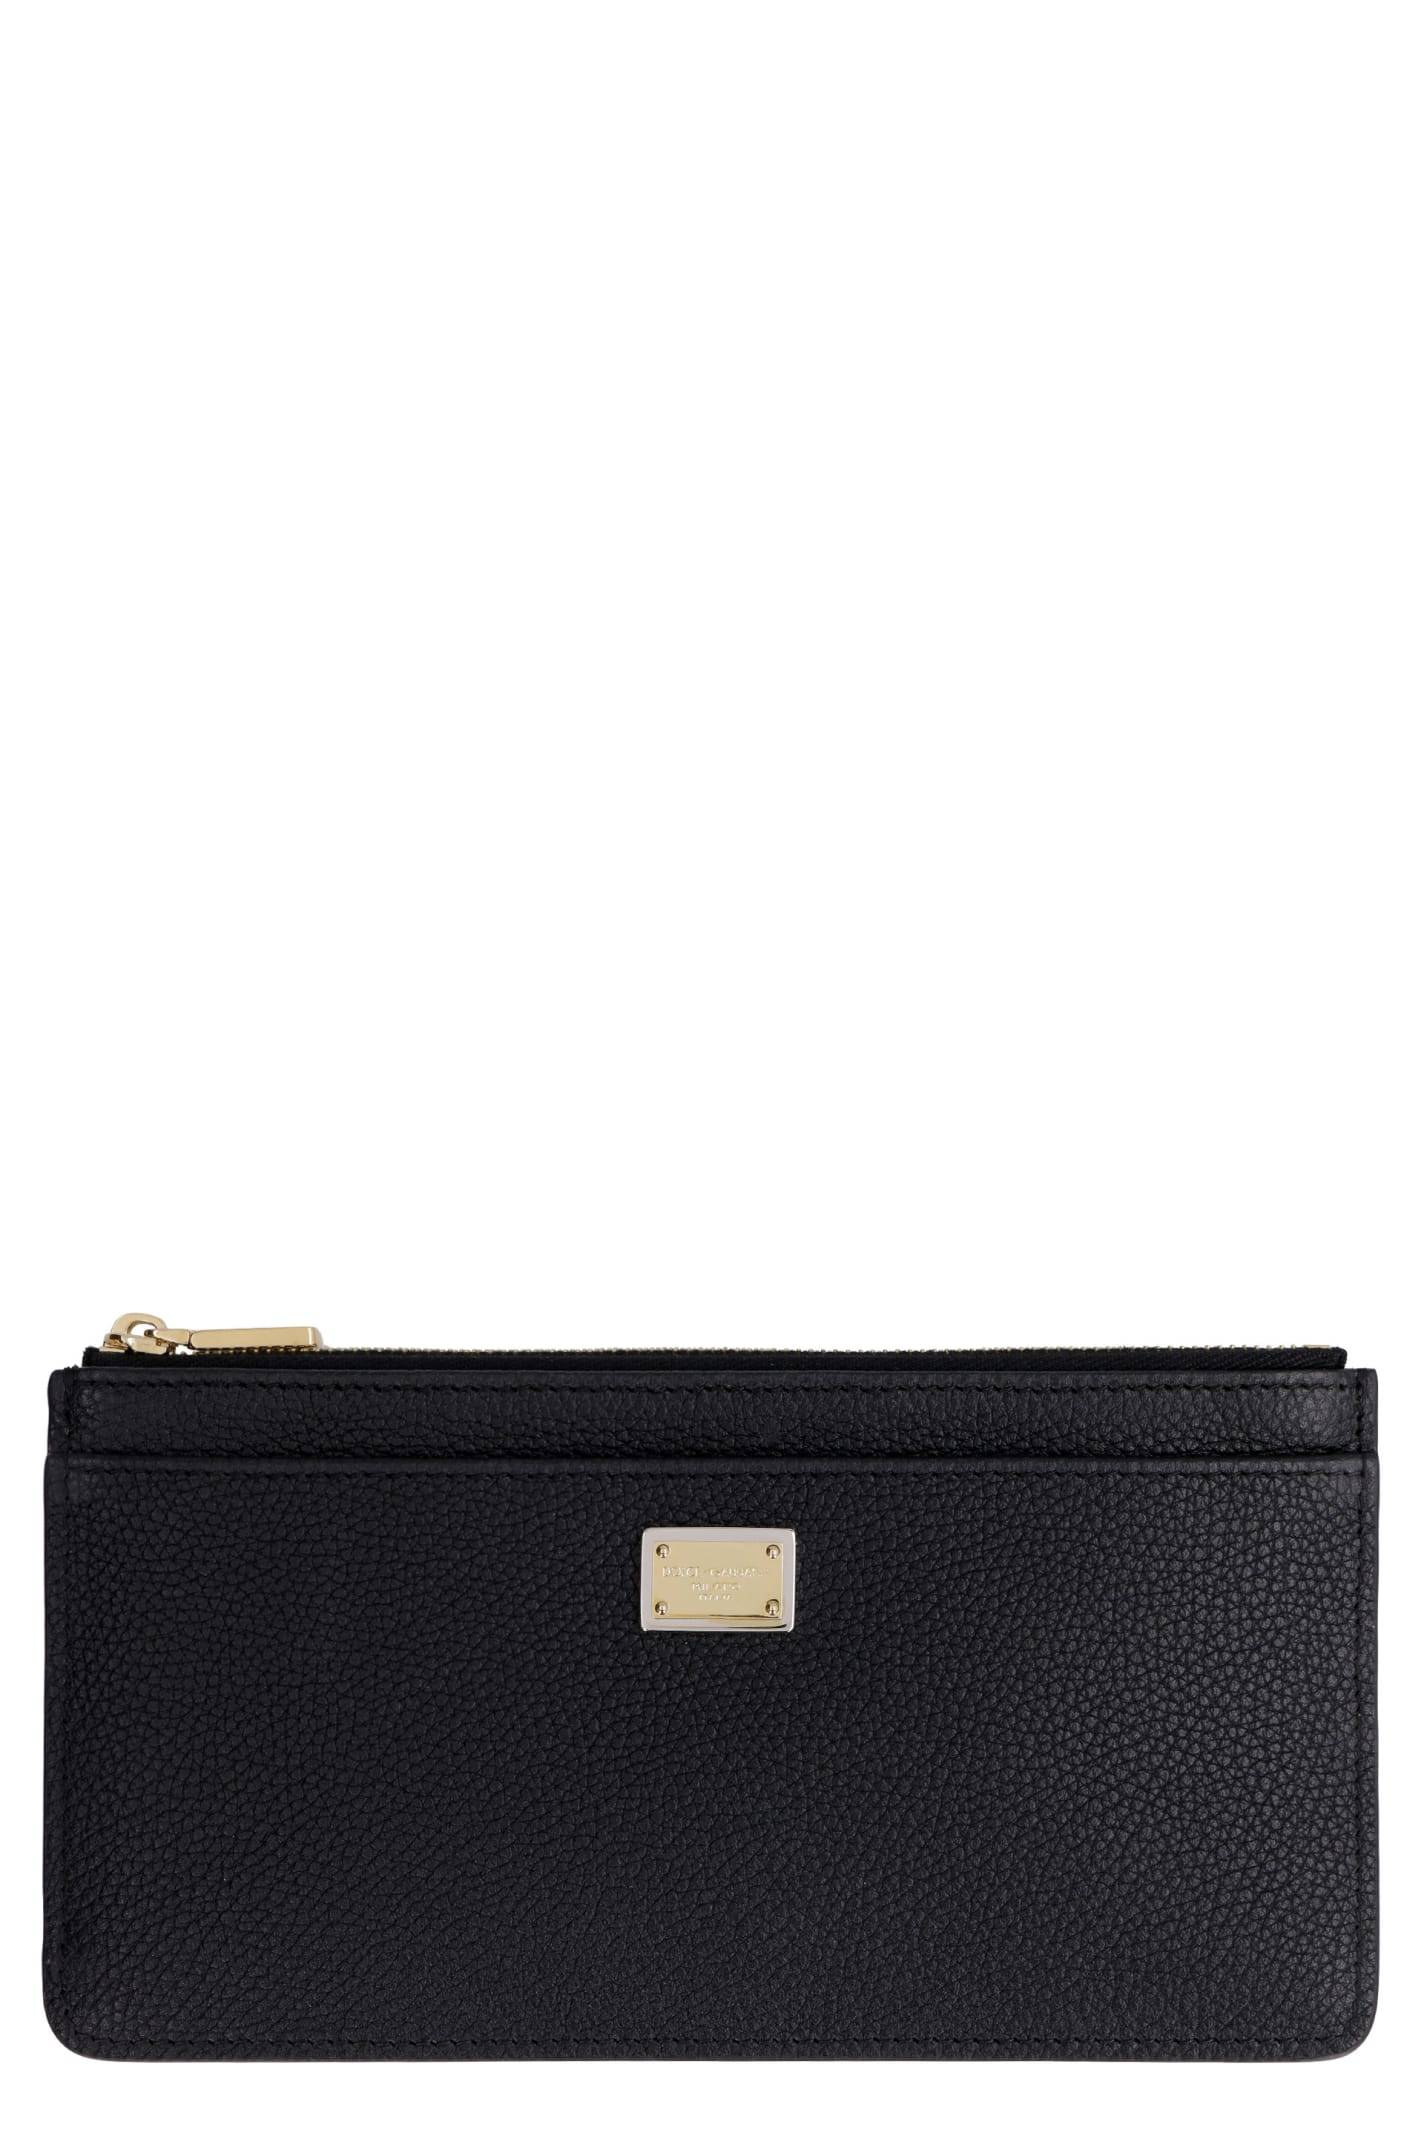 Dolce & Gabbana Cardholders DAUPHINE PRINT LEATHER CARD HOLDER